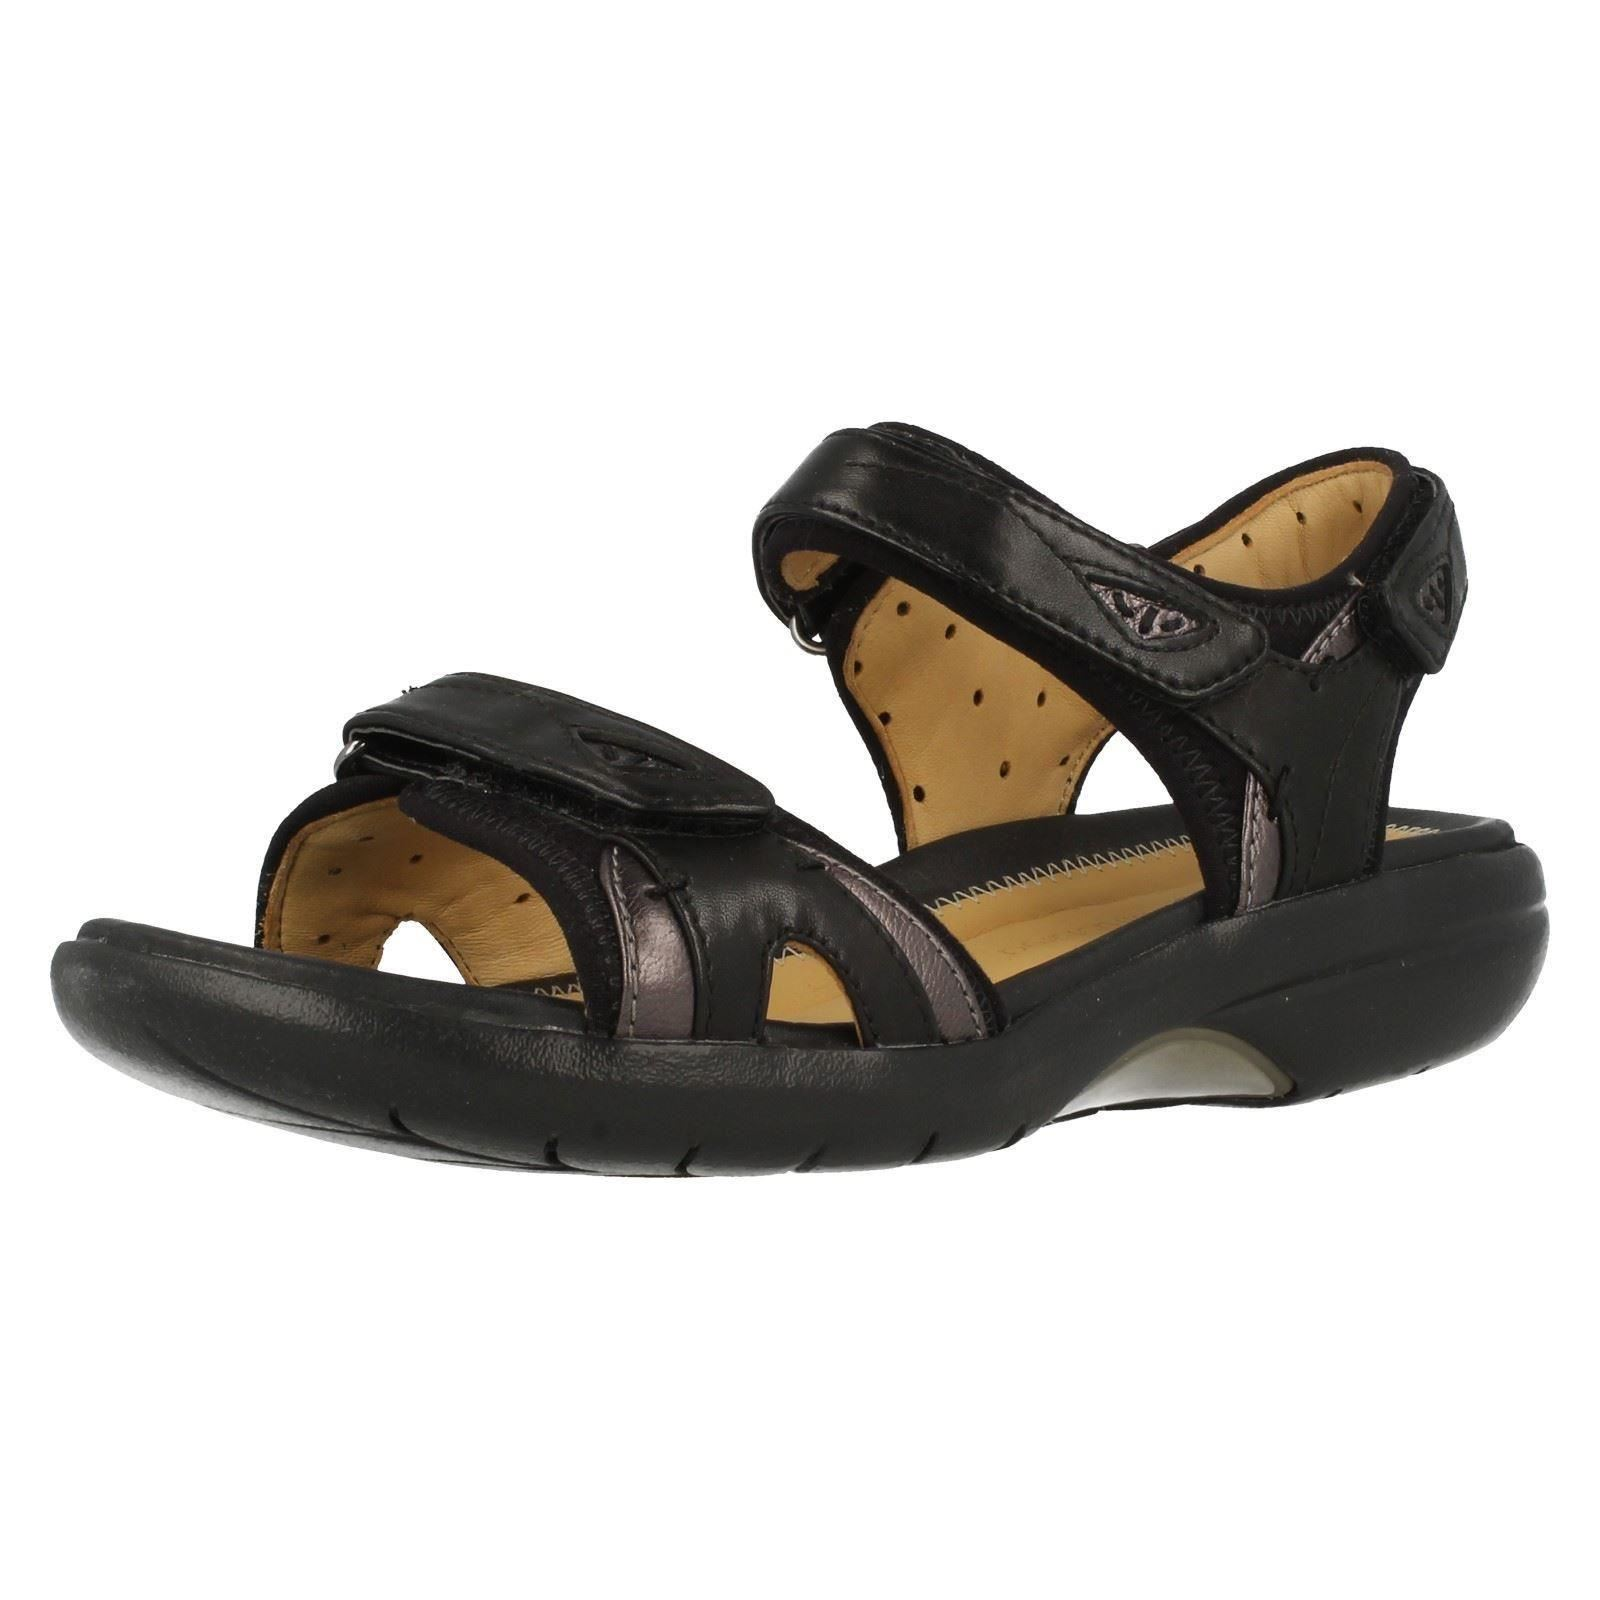 clarks un swish sandals size 5